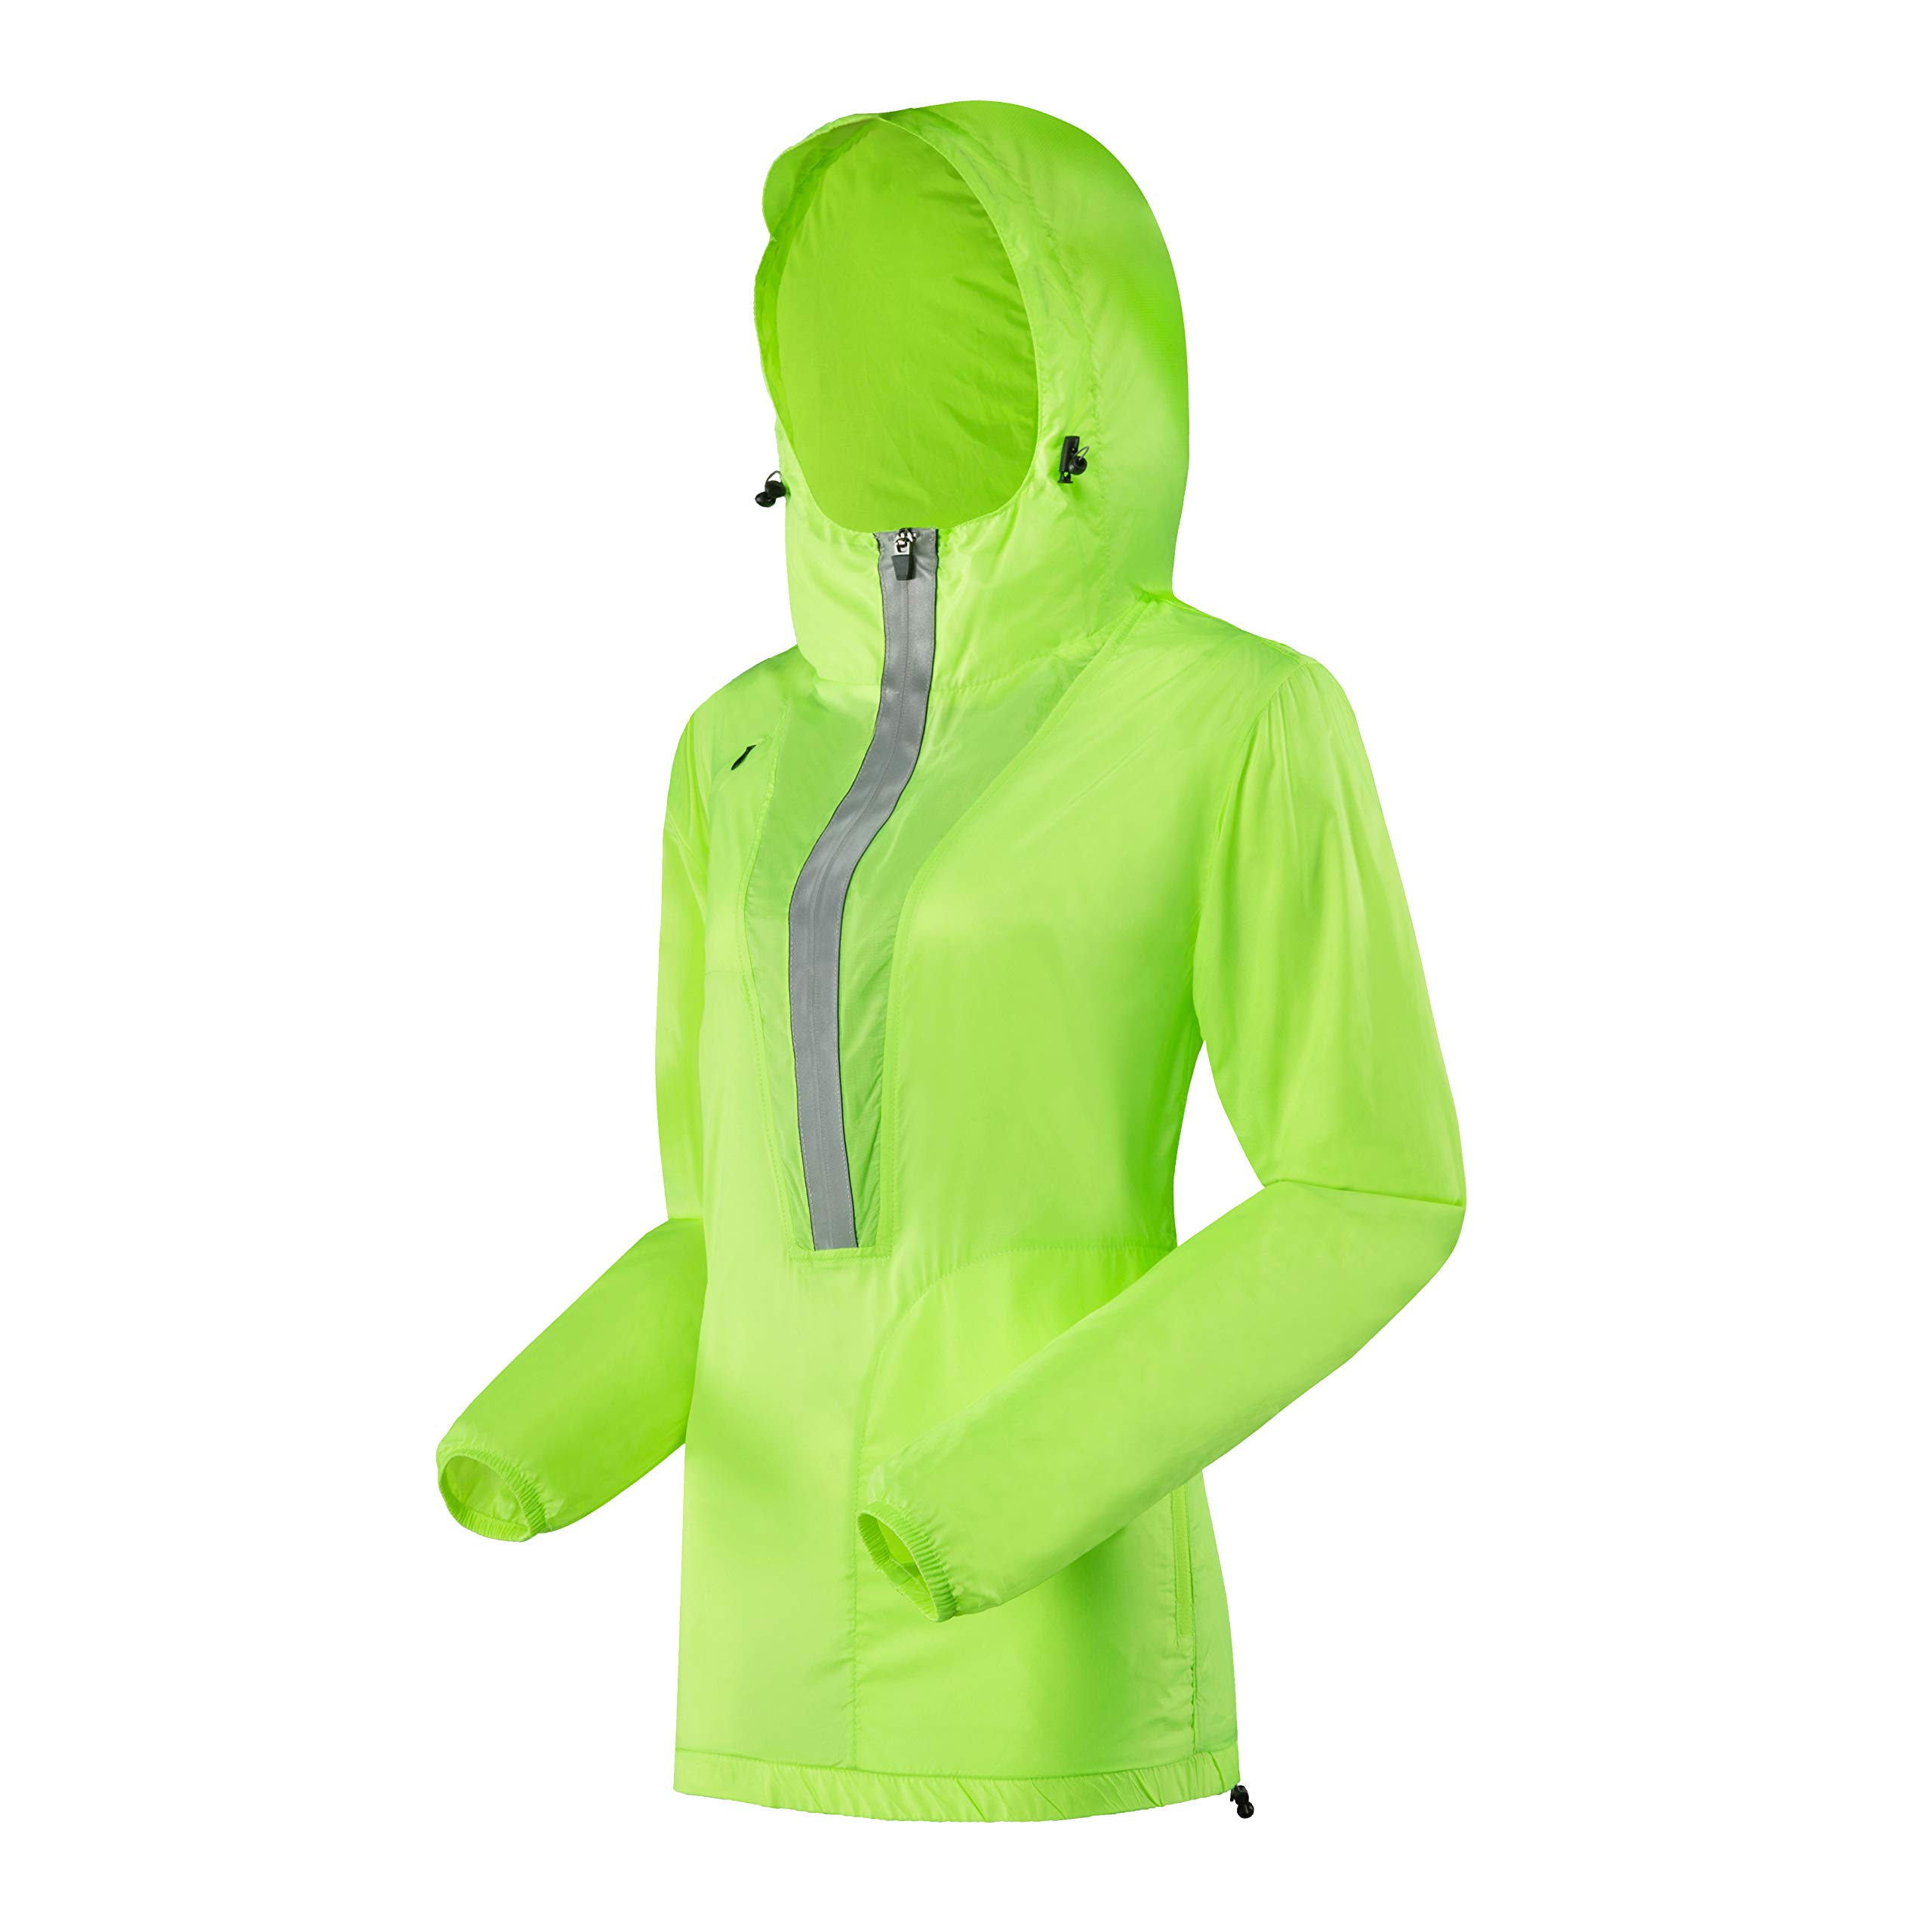 J.CARP Women's Windproof Jacket, Big Reflective Elements, Hooded and Packable Fluorescent Green XL by J.CARP